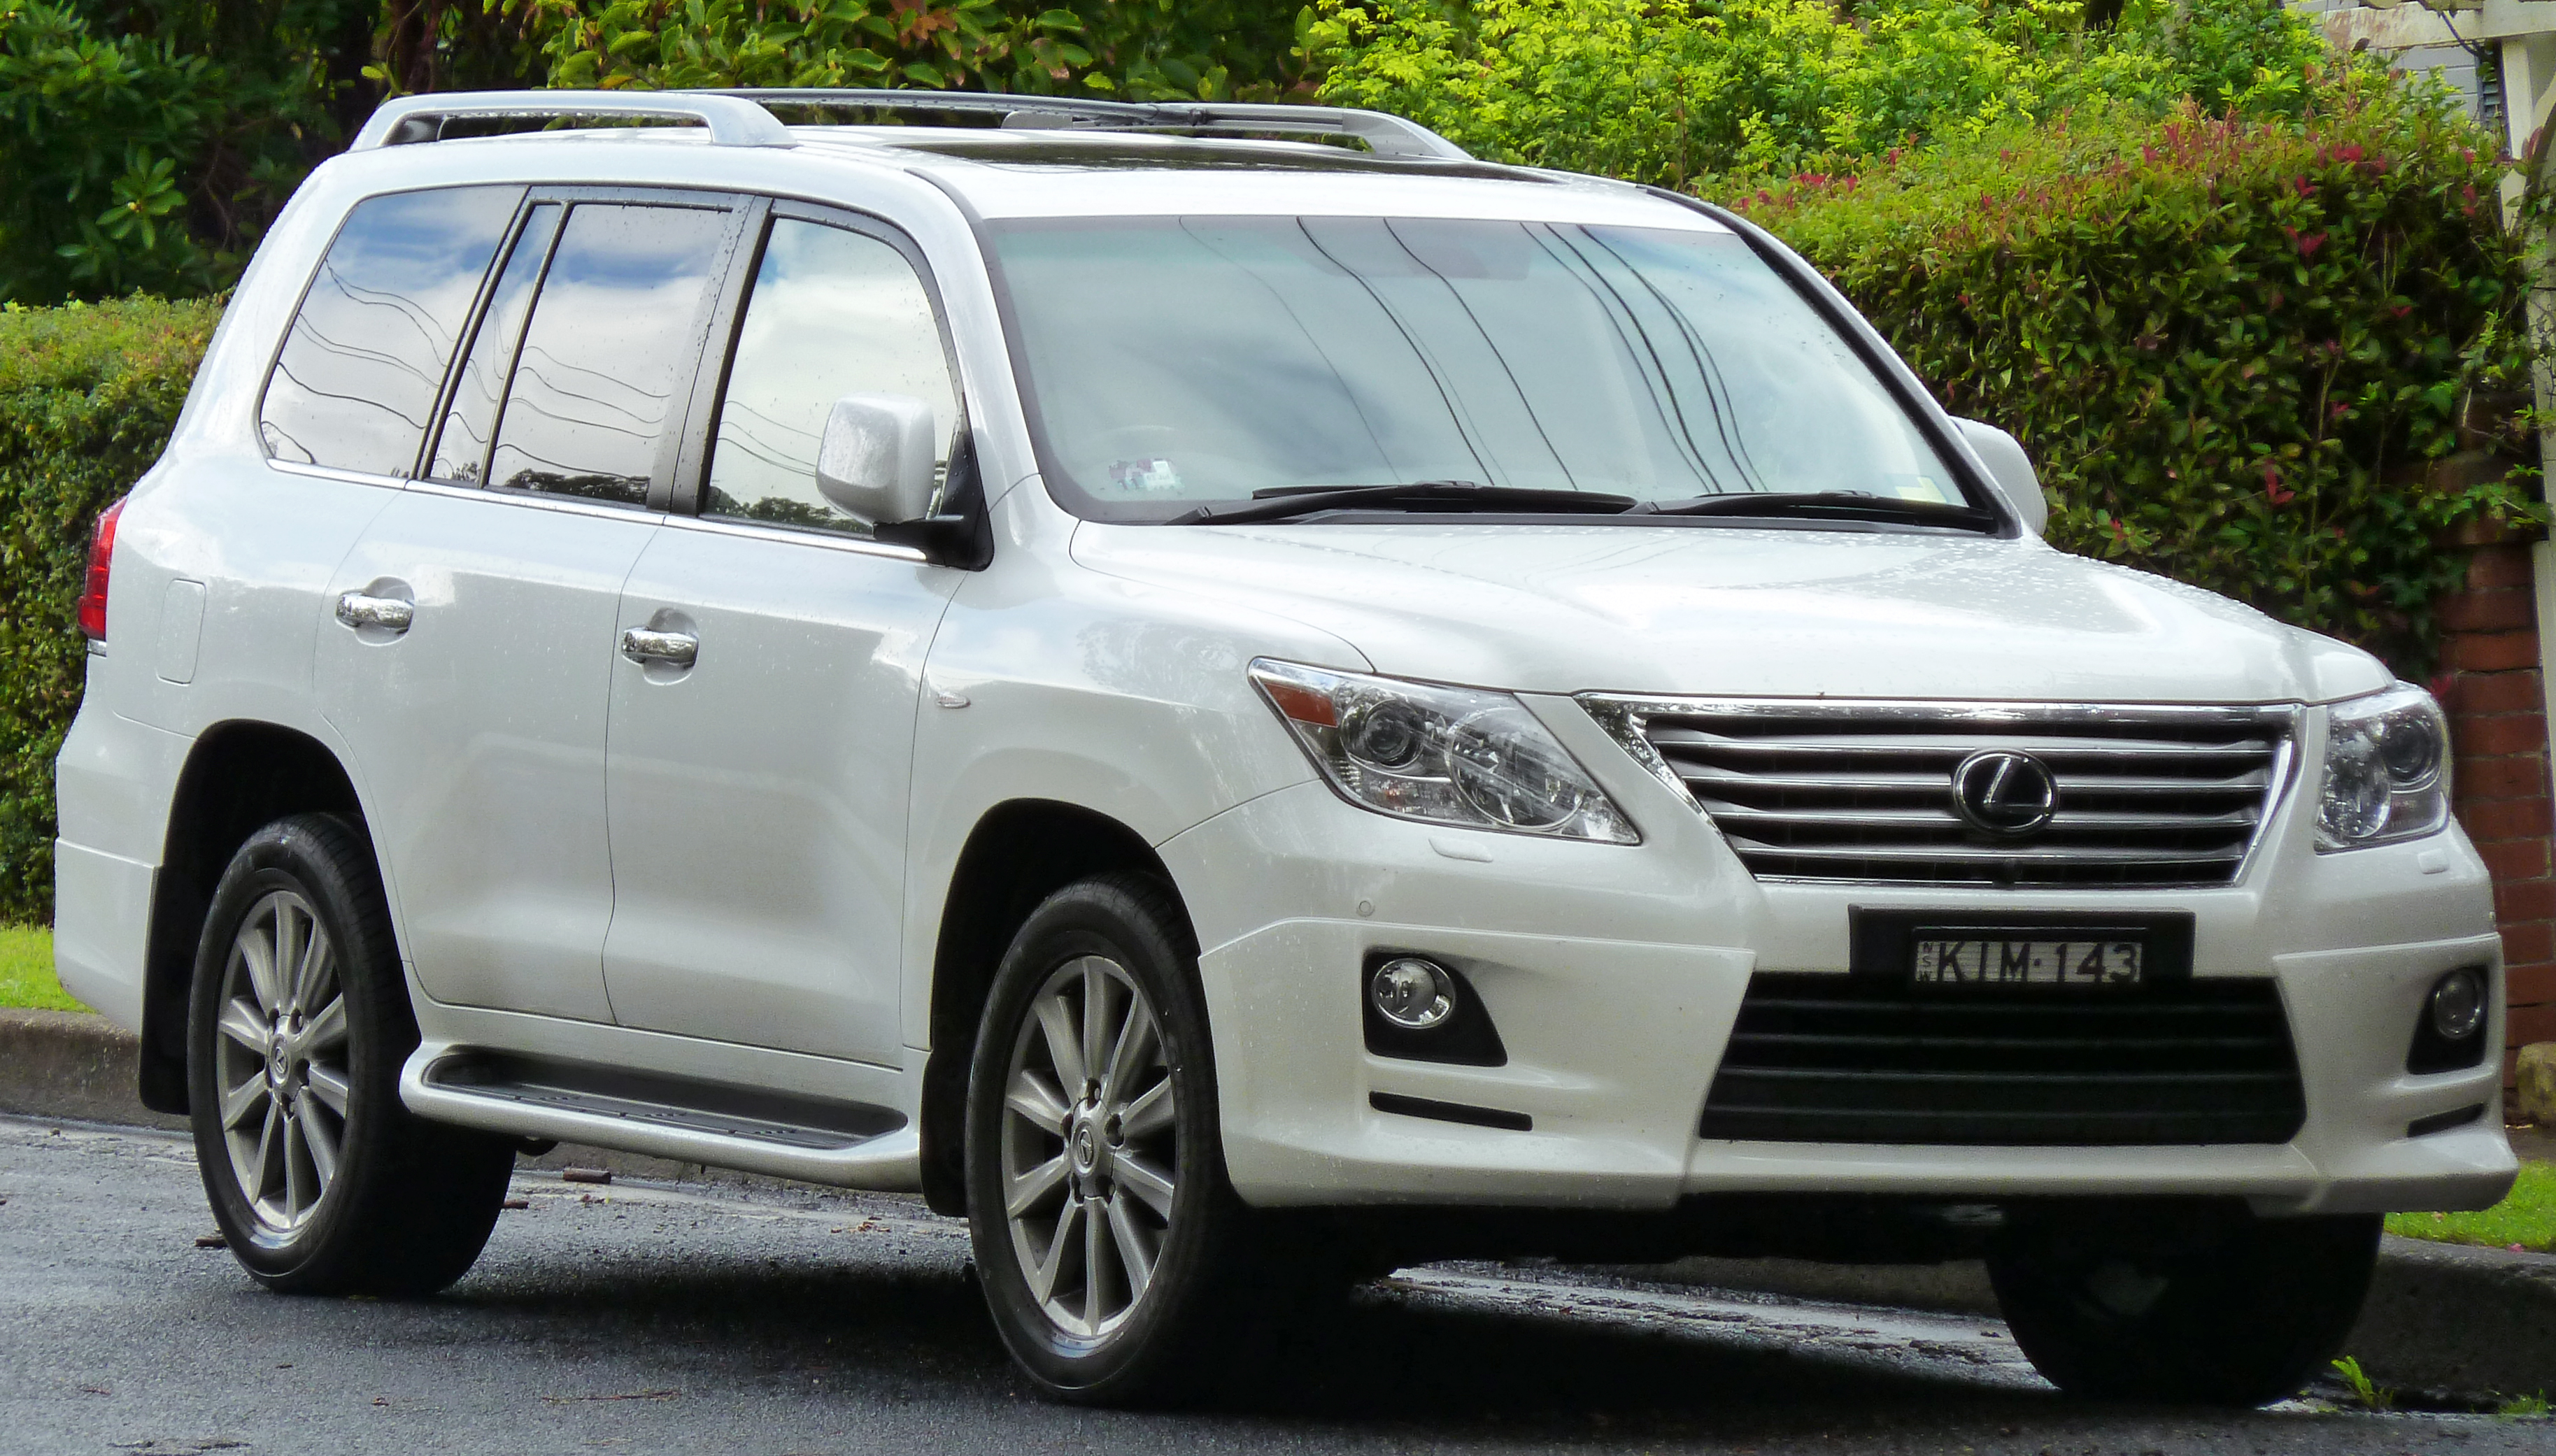 File:2008 2011 Lexus LX 570 (URJ201R) Sports Luxury Wagon (2011